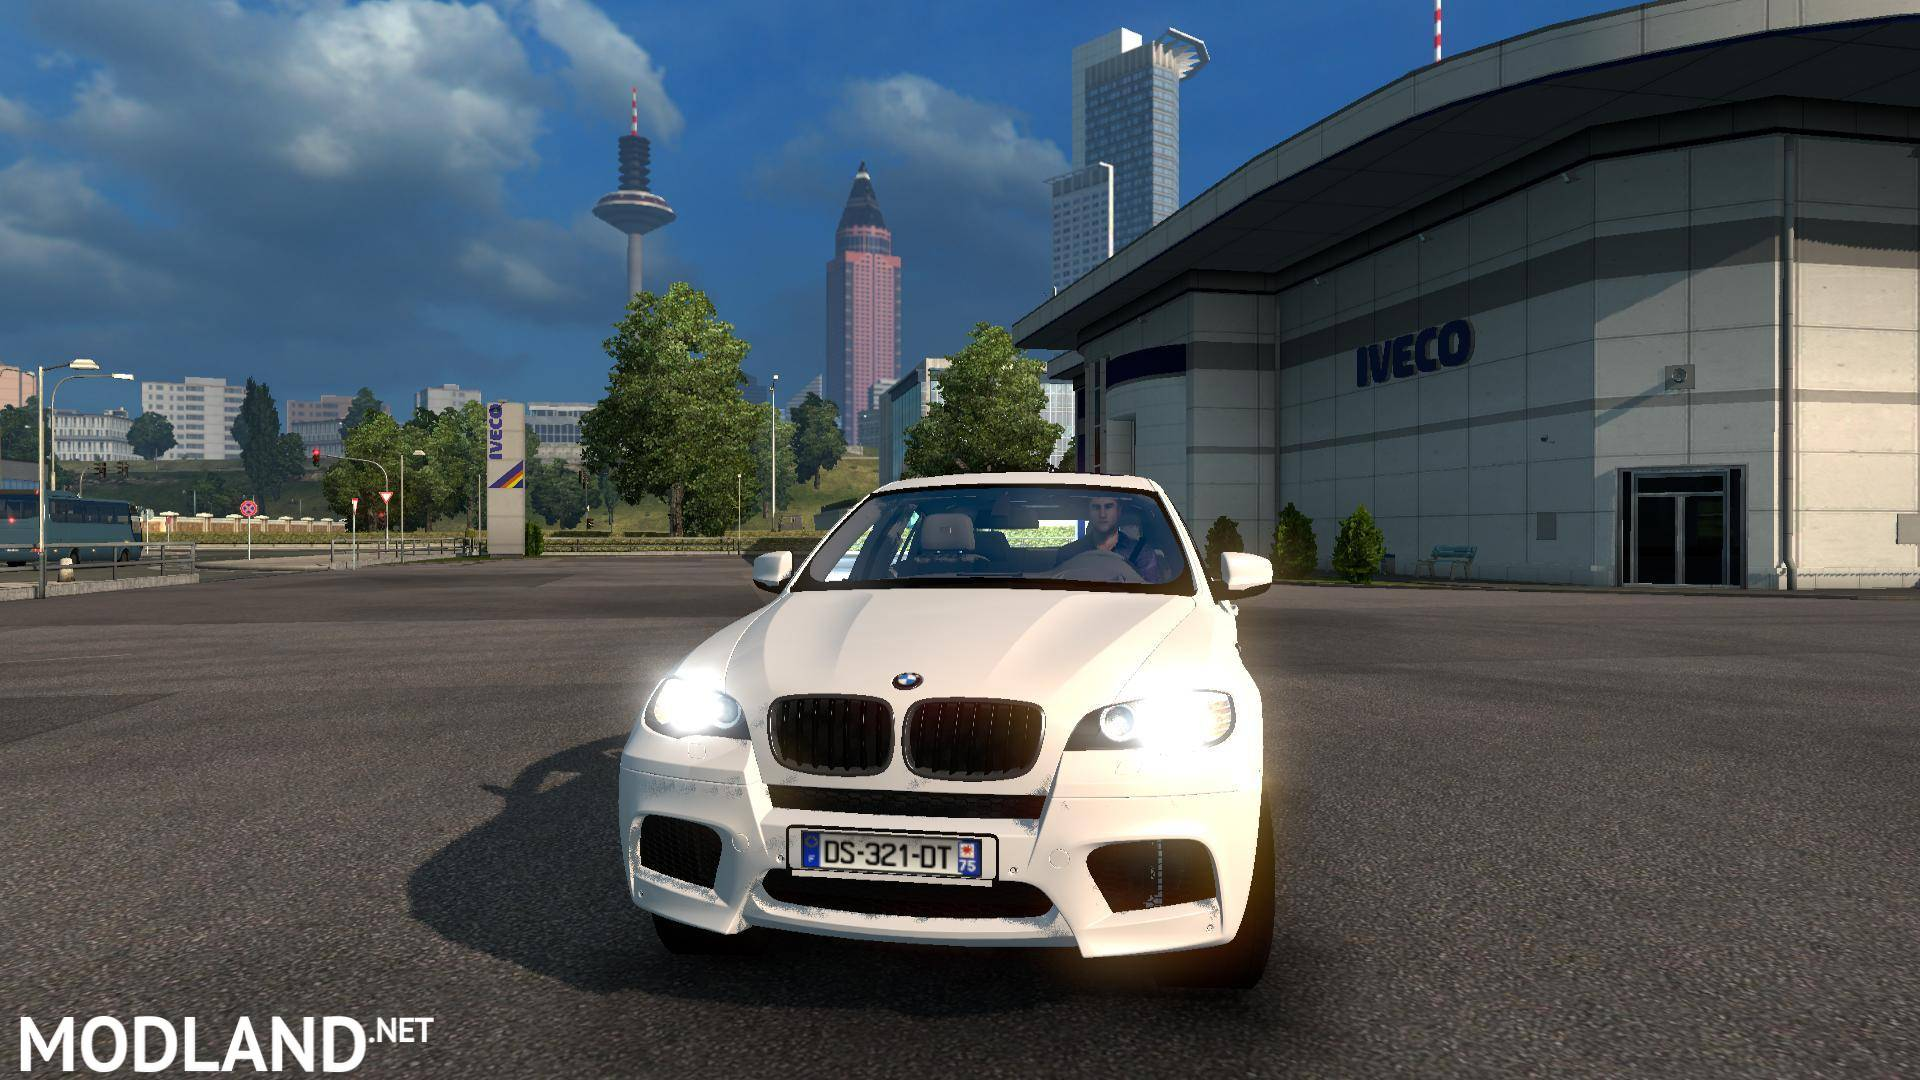 Bmw X6 V3 2 Furkansevke 1 19 X Fixed Mod For Ets 2